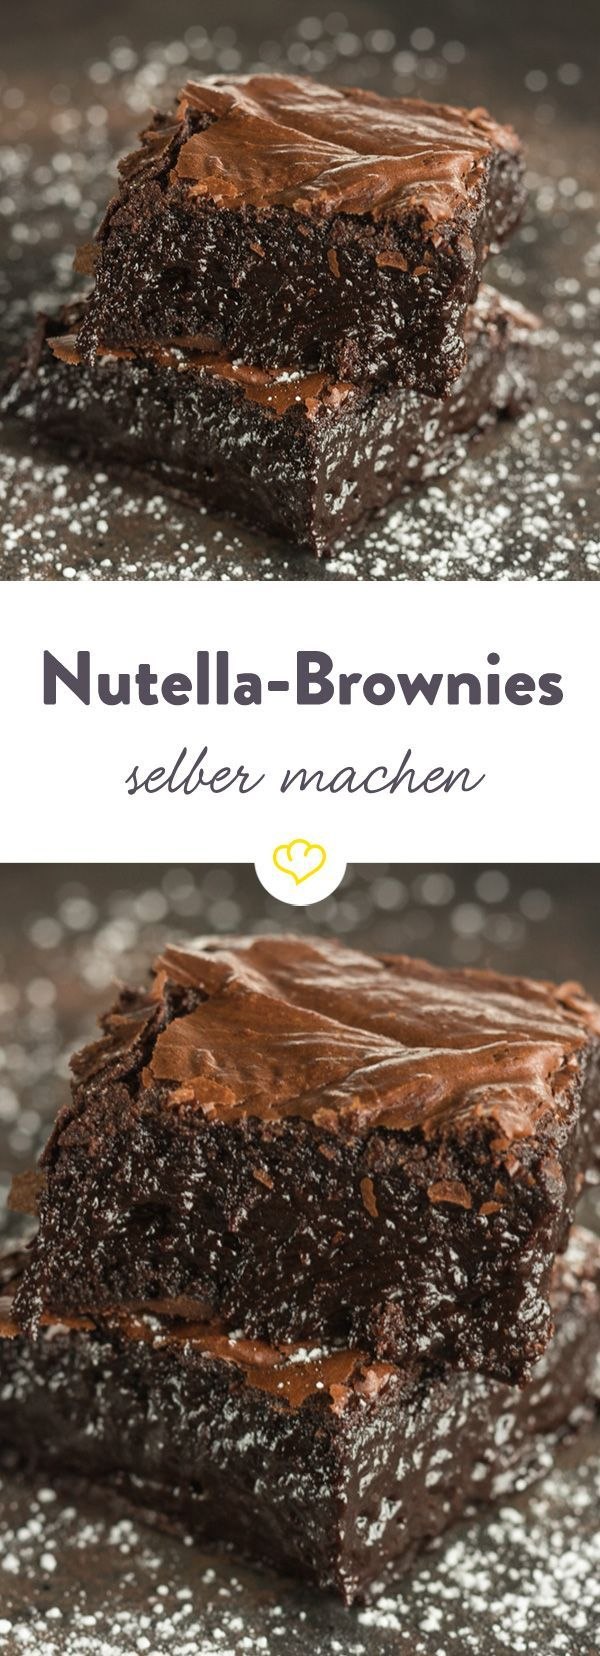 With Nutella, cocoa and a lot of chocolate you will be transported by this incredibly juicy …